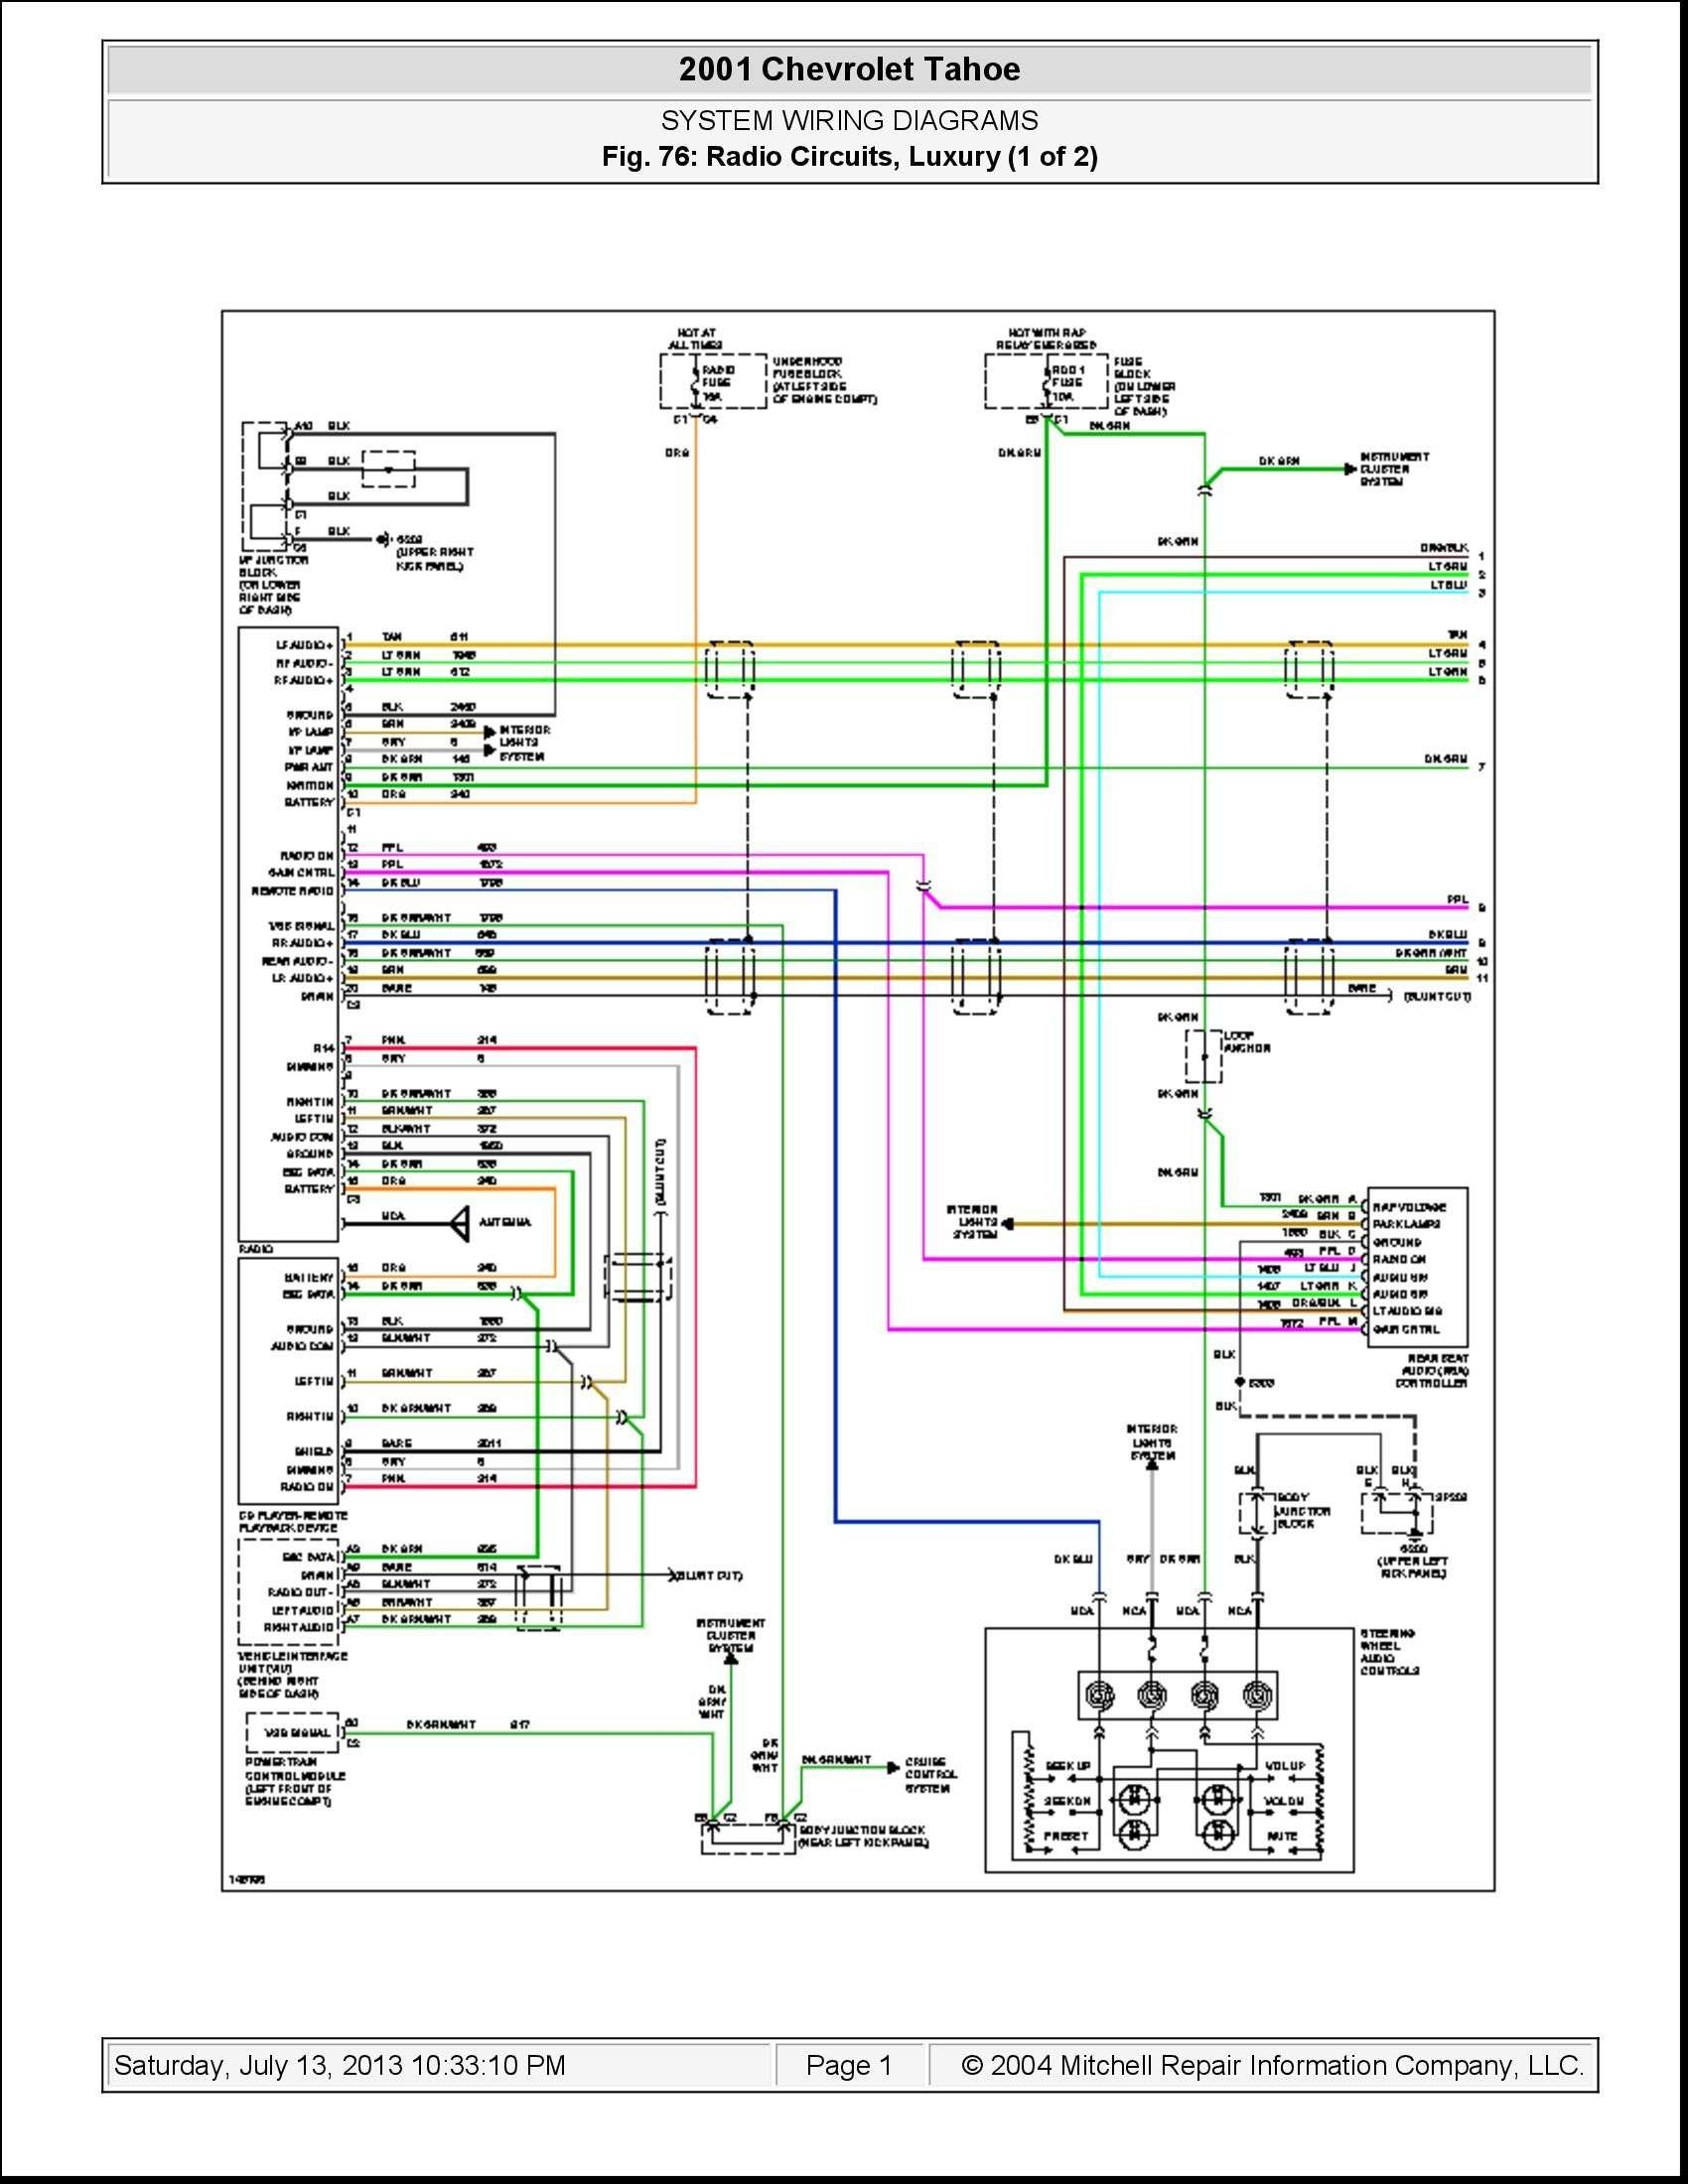 2004 chevy 2500hd trailer wiring diagram Download-2004 Chevy Silverado Radio Wiring Harness Diagram Best 2005 Chevy 19-b